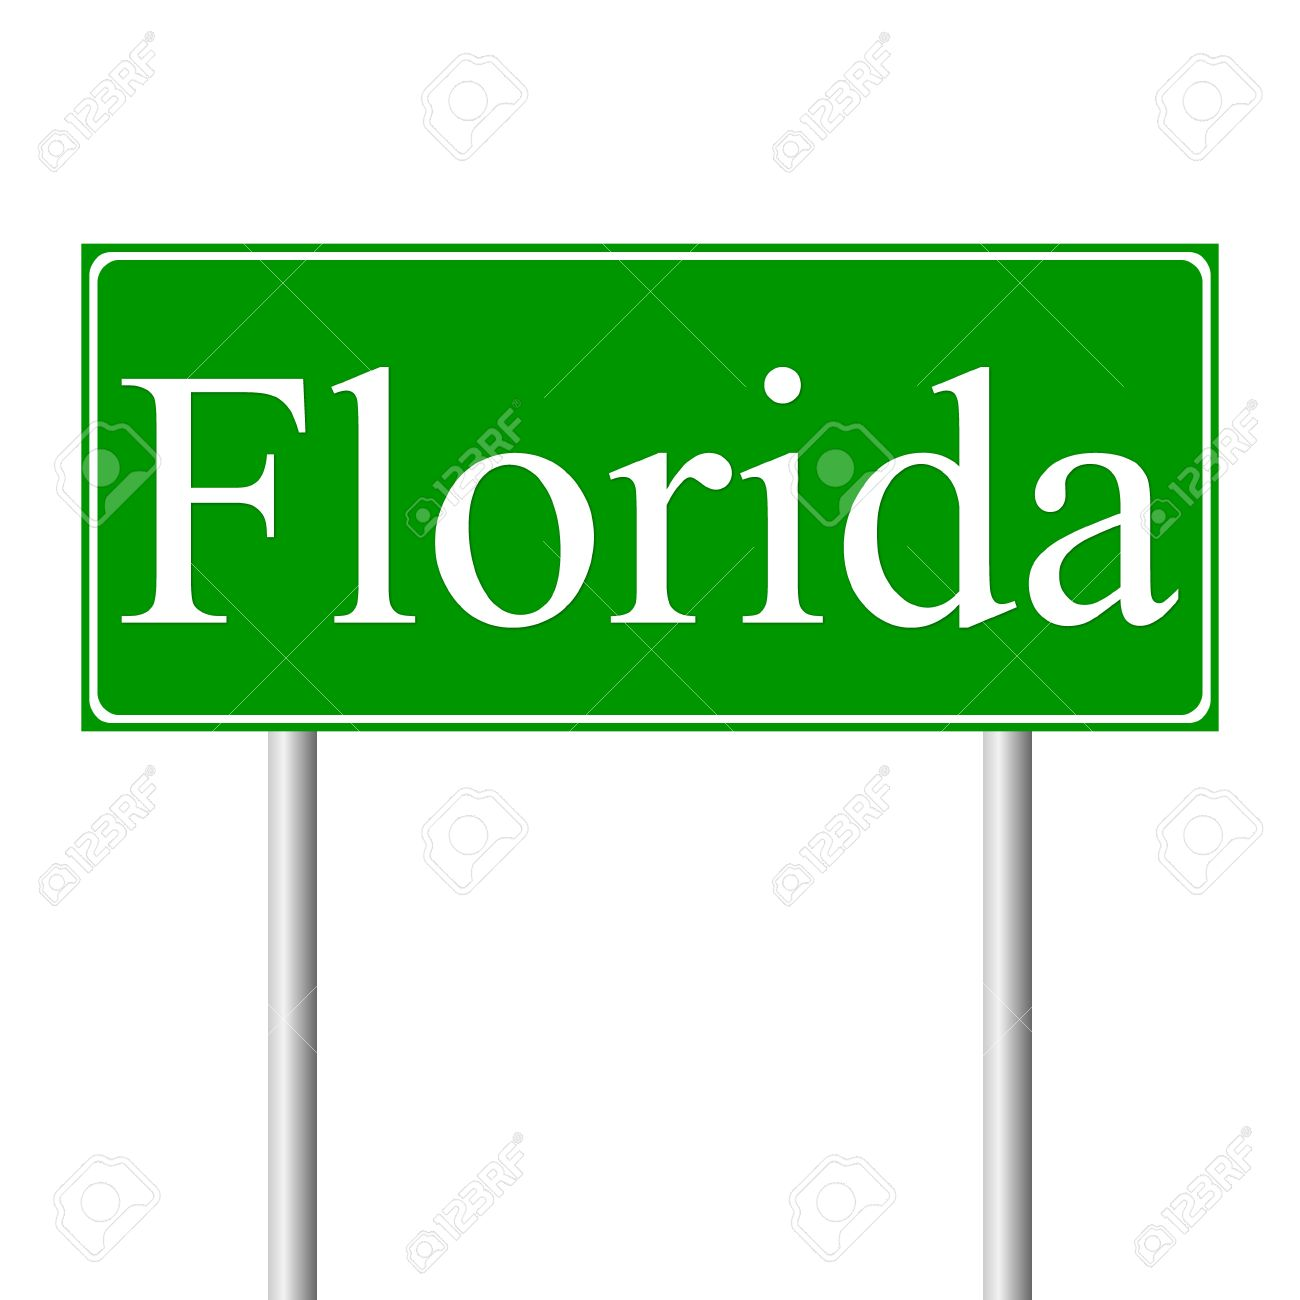 Florida Green Road Sign Isolated On White Background Royalty Free.